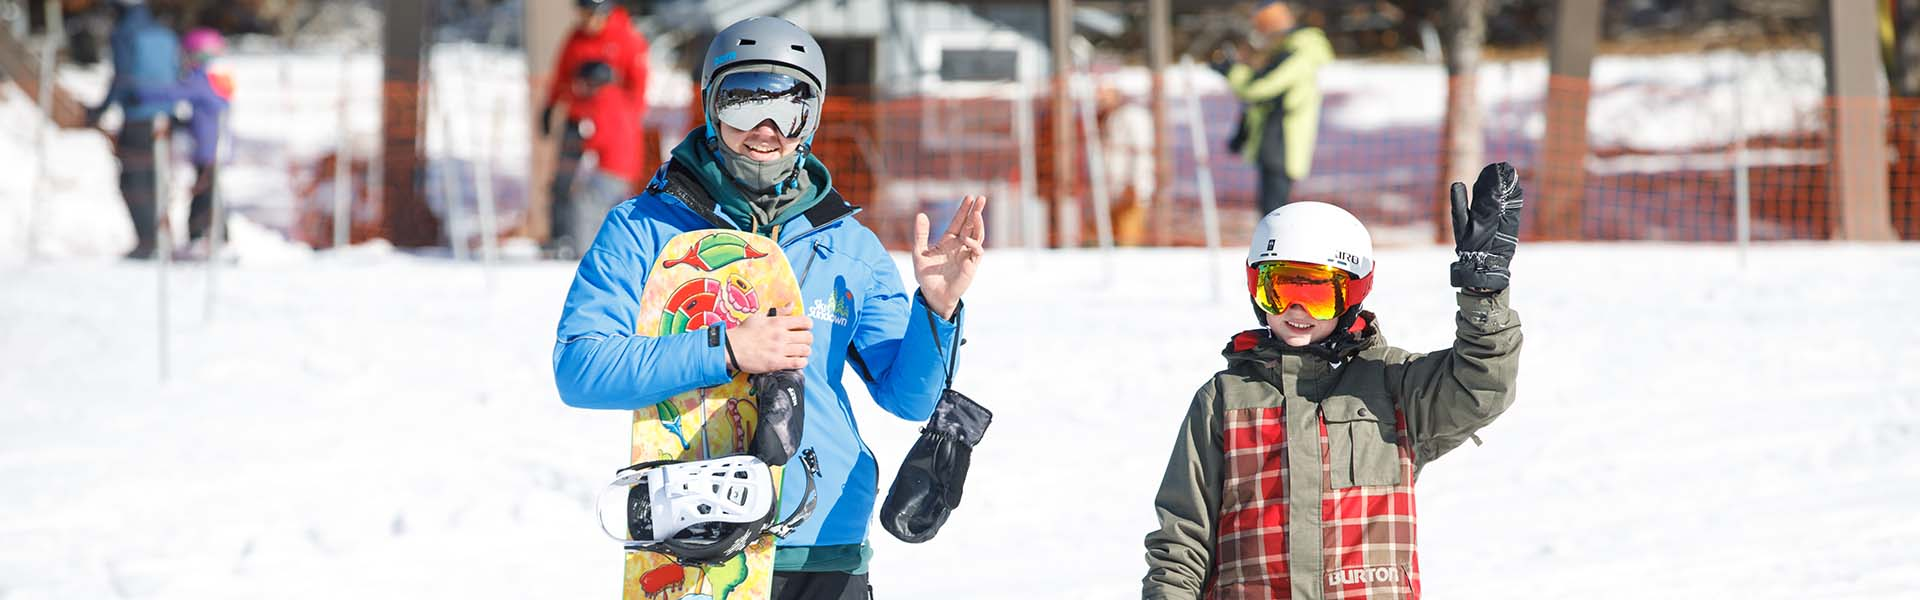 Snowboard instructor with student